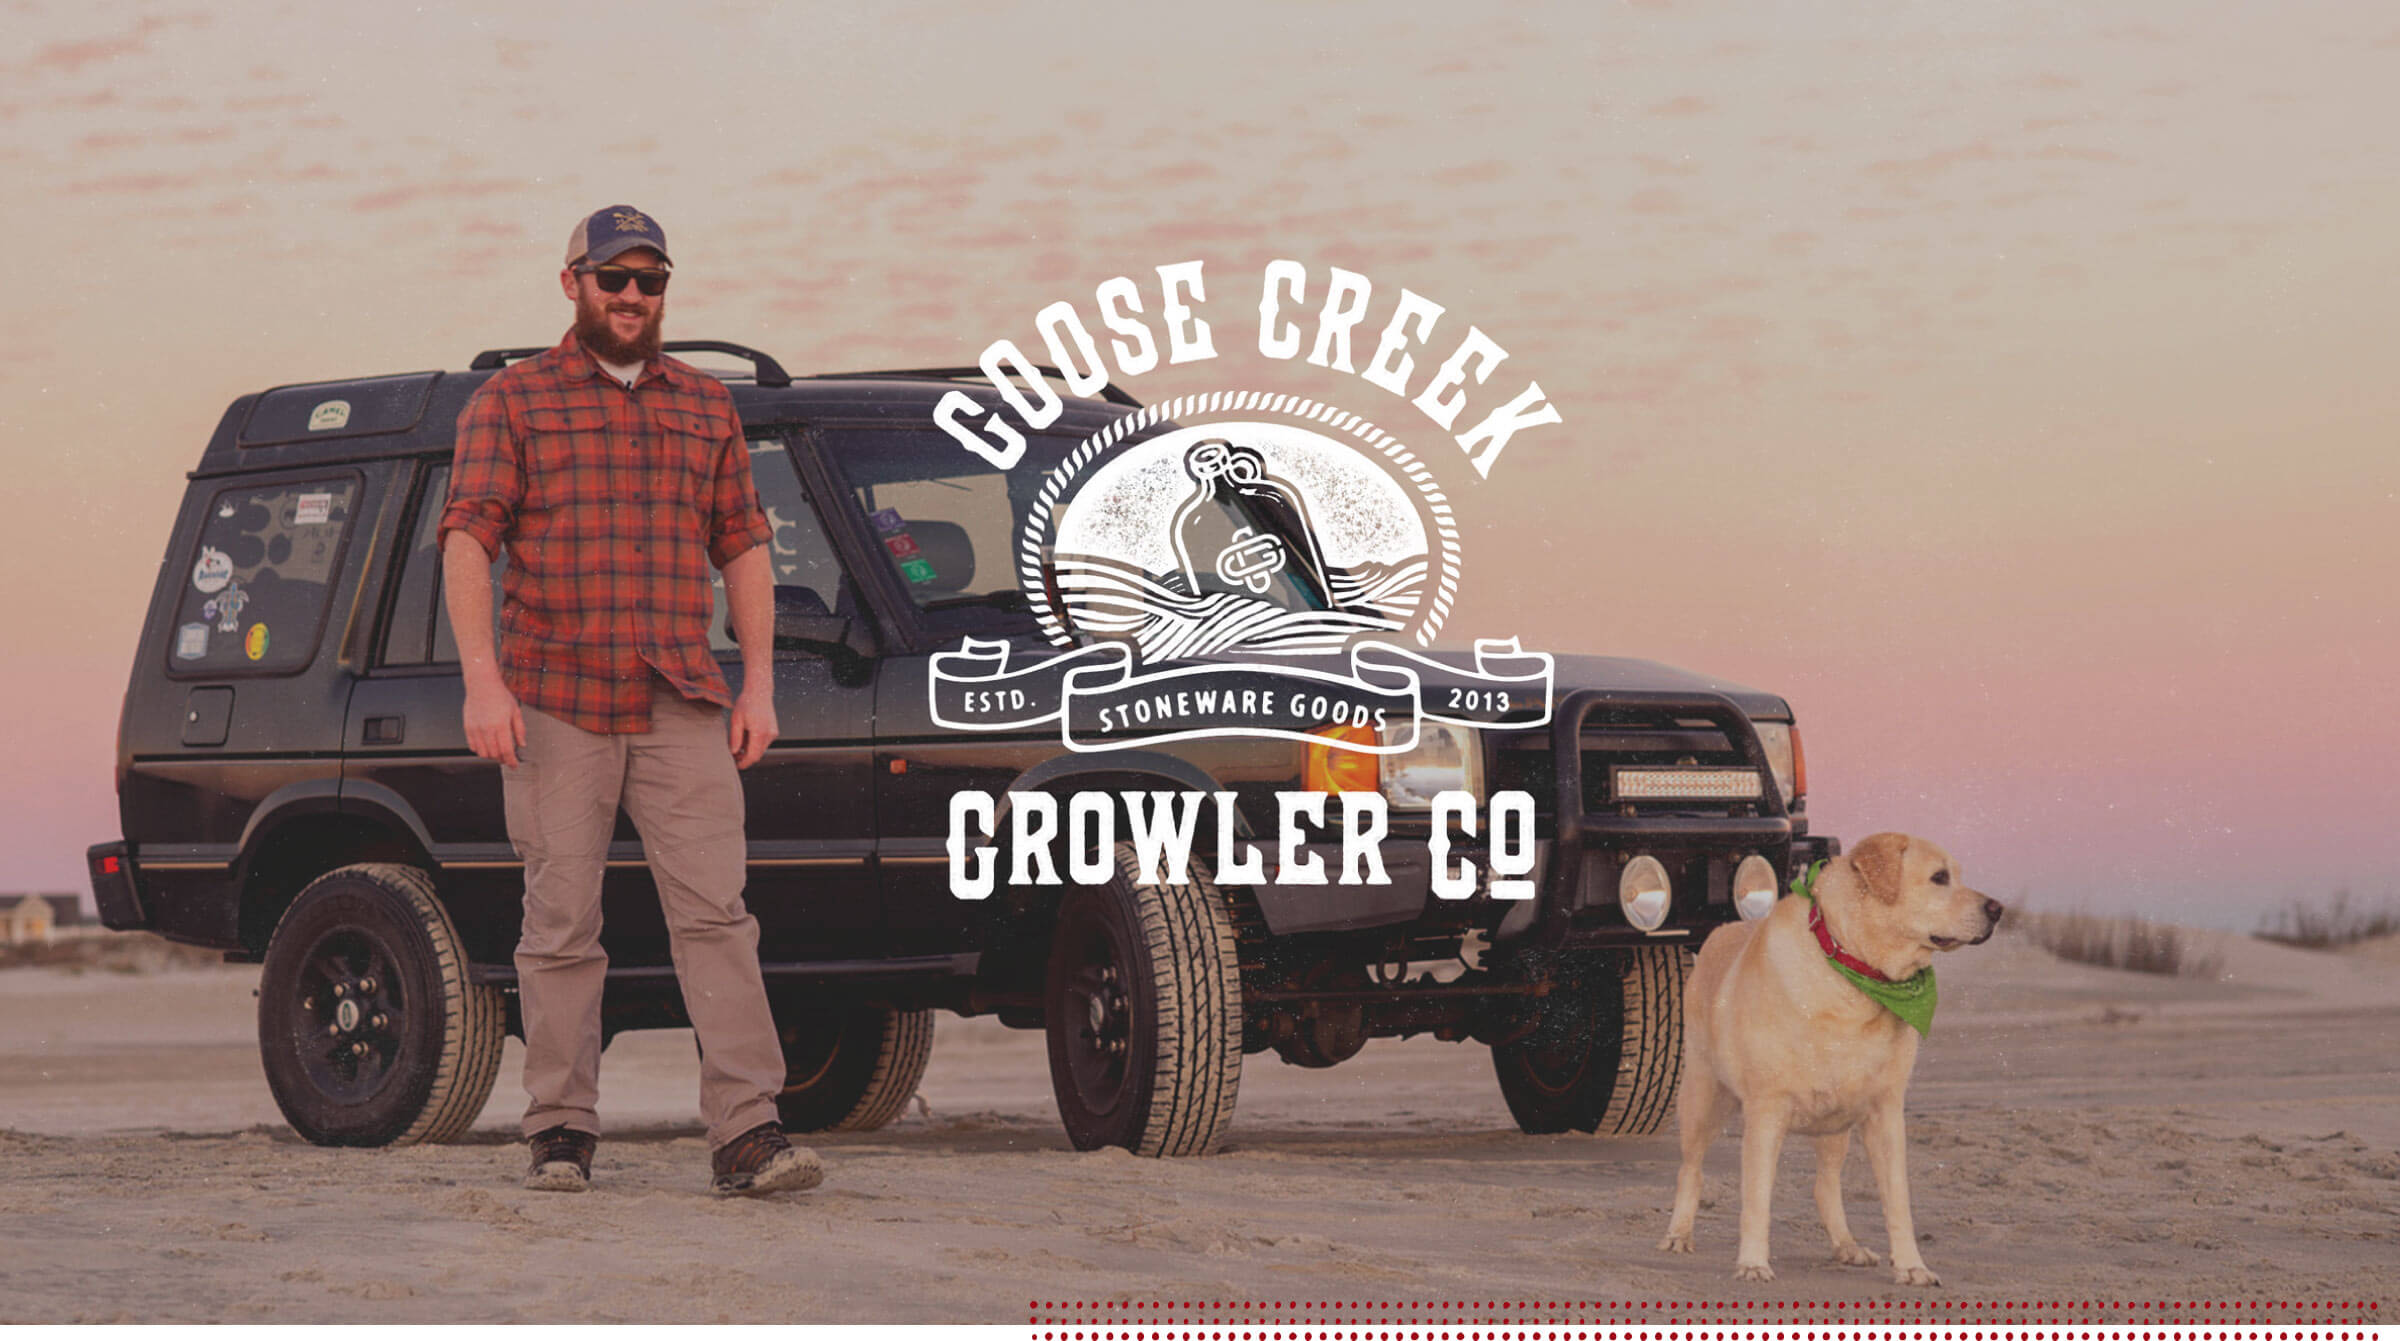 About Goose Creek Growler Company